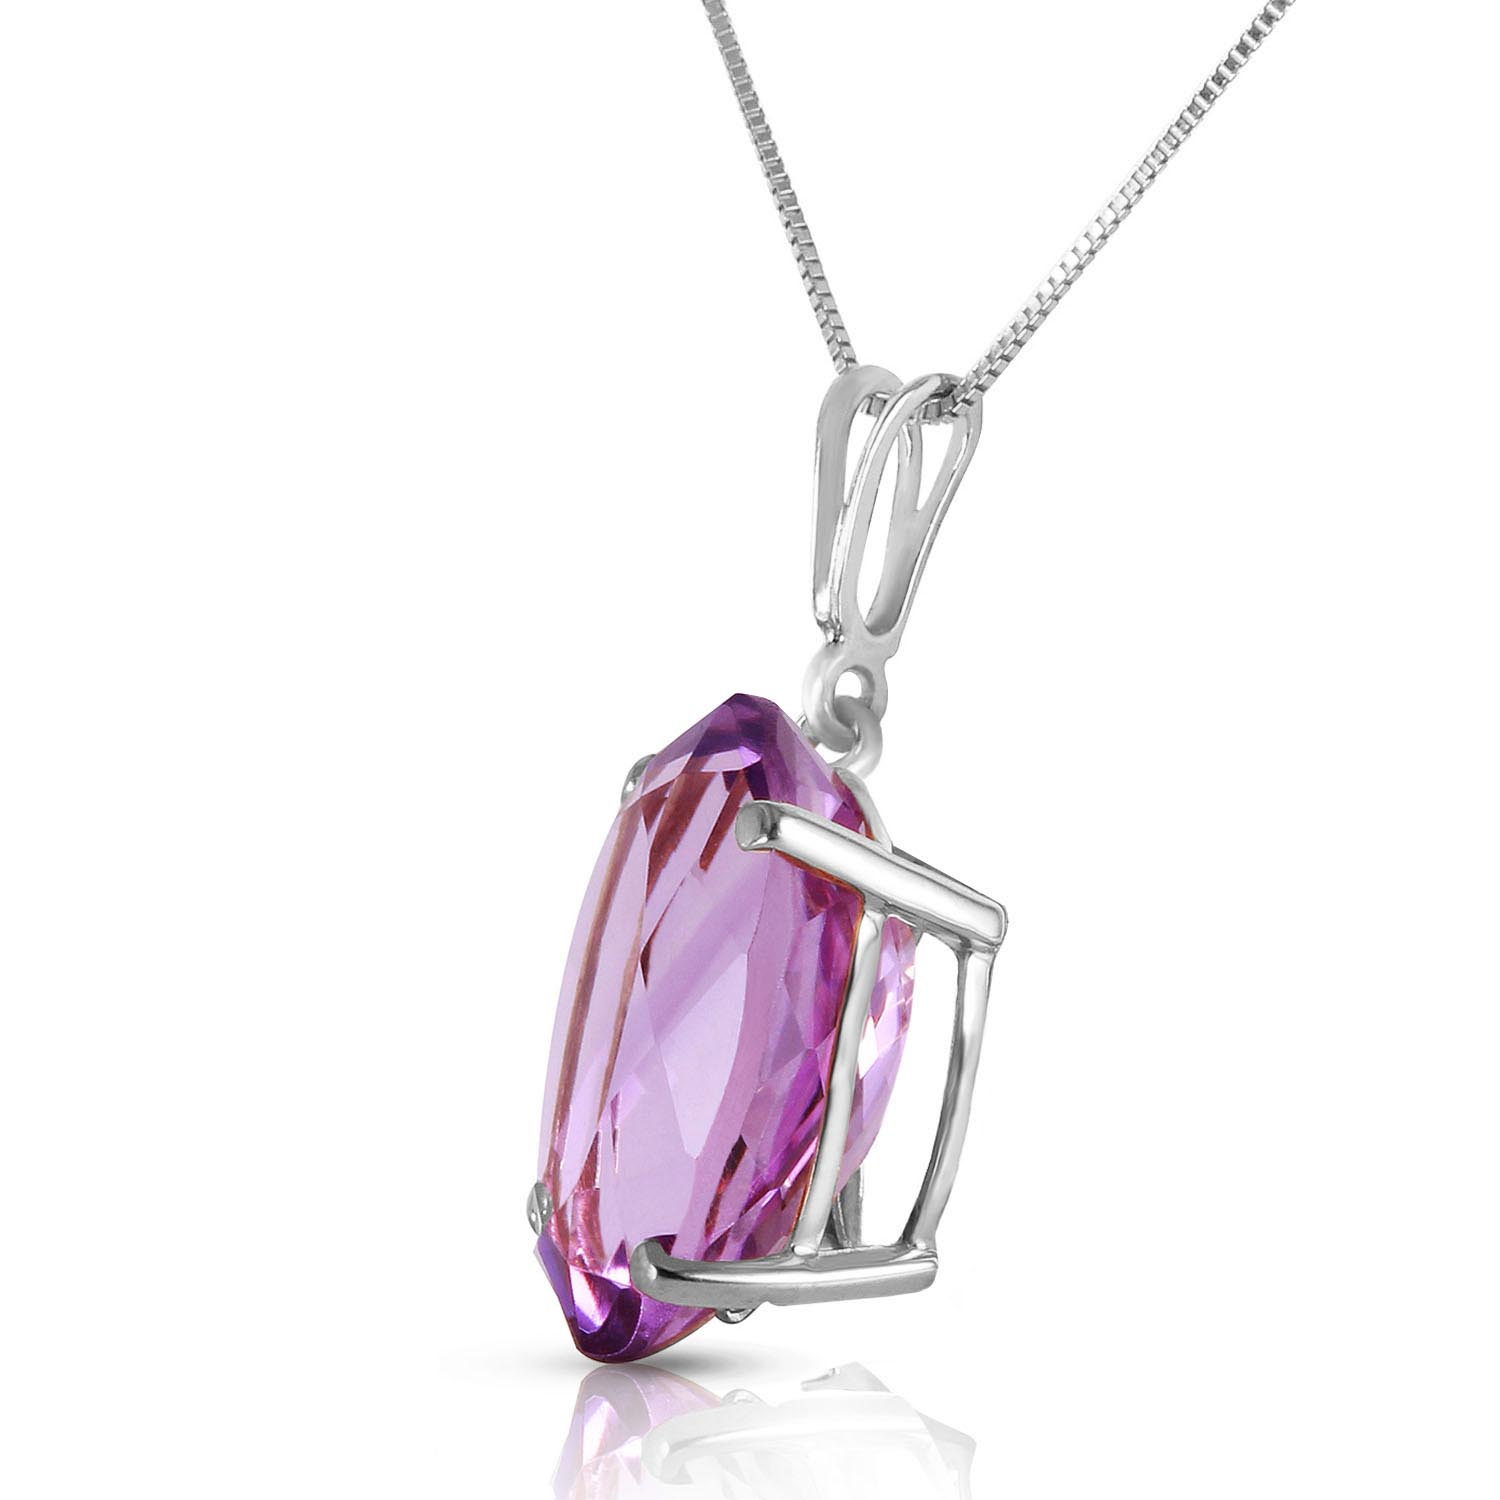 Oval Cut Amethyst Pendant Necklace 7.55ct in 9ct White Gold